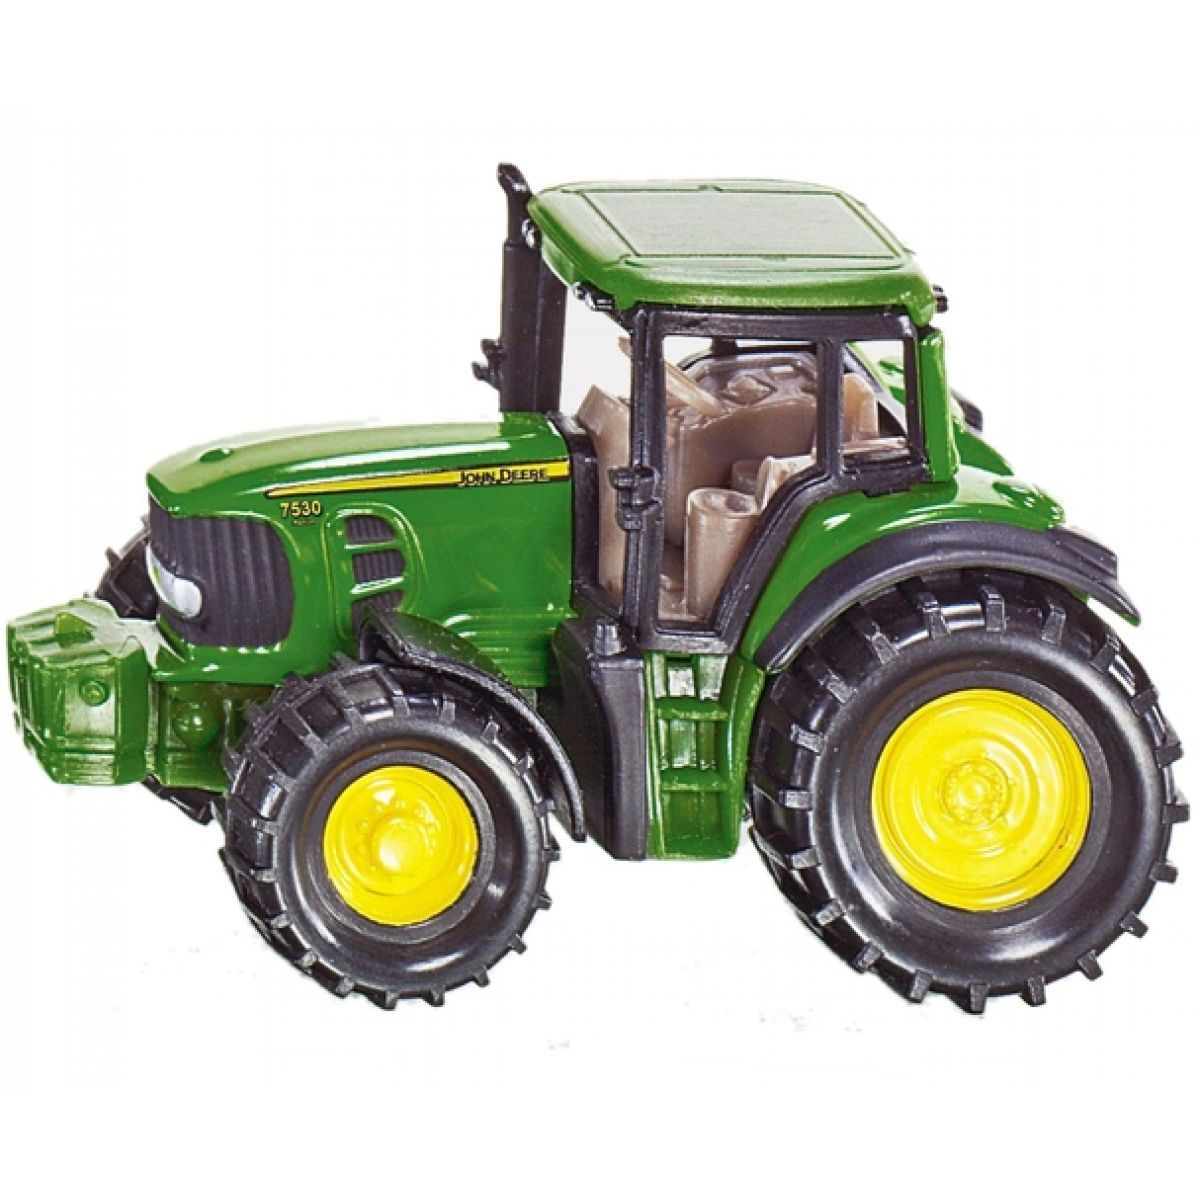 siku 1009 traktor john deere 7530 max kovy hra ky. Black Bedroom Furniture Sets. Home Design Ideas